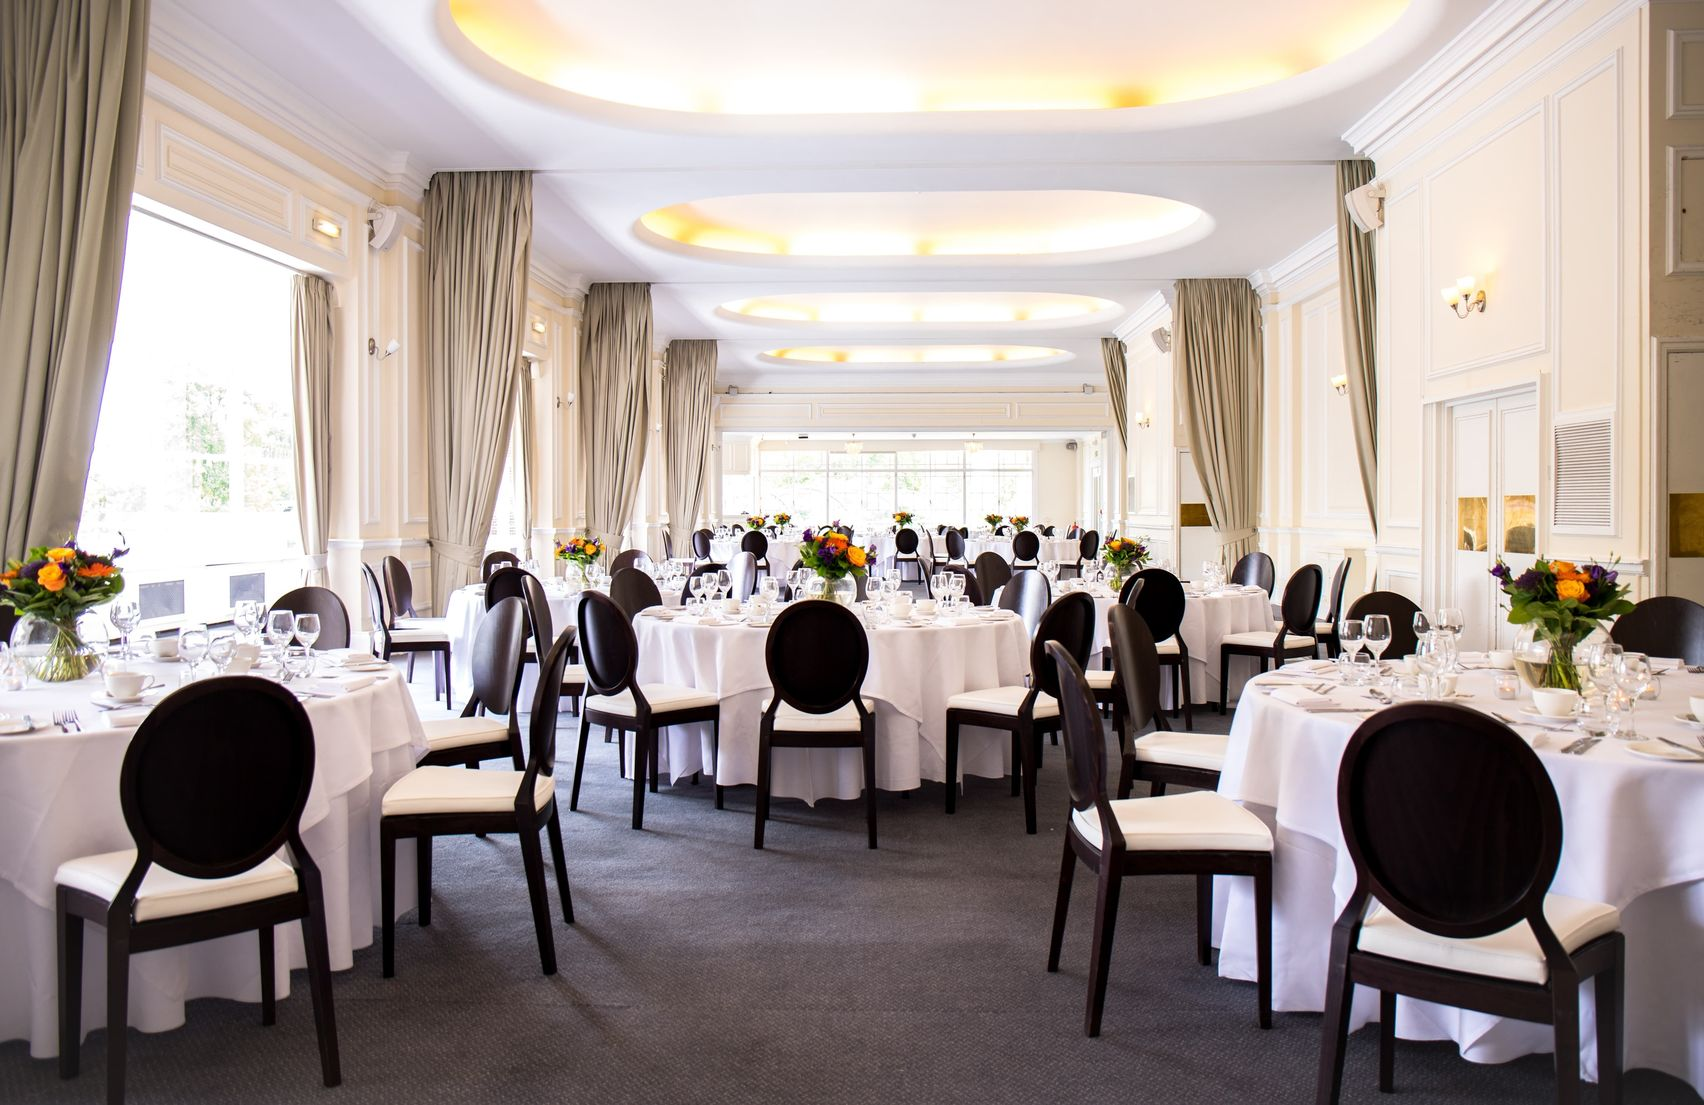 A large naturally lit room decorated with white tablecloths and surrounded by black dining chairs